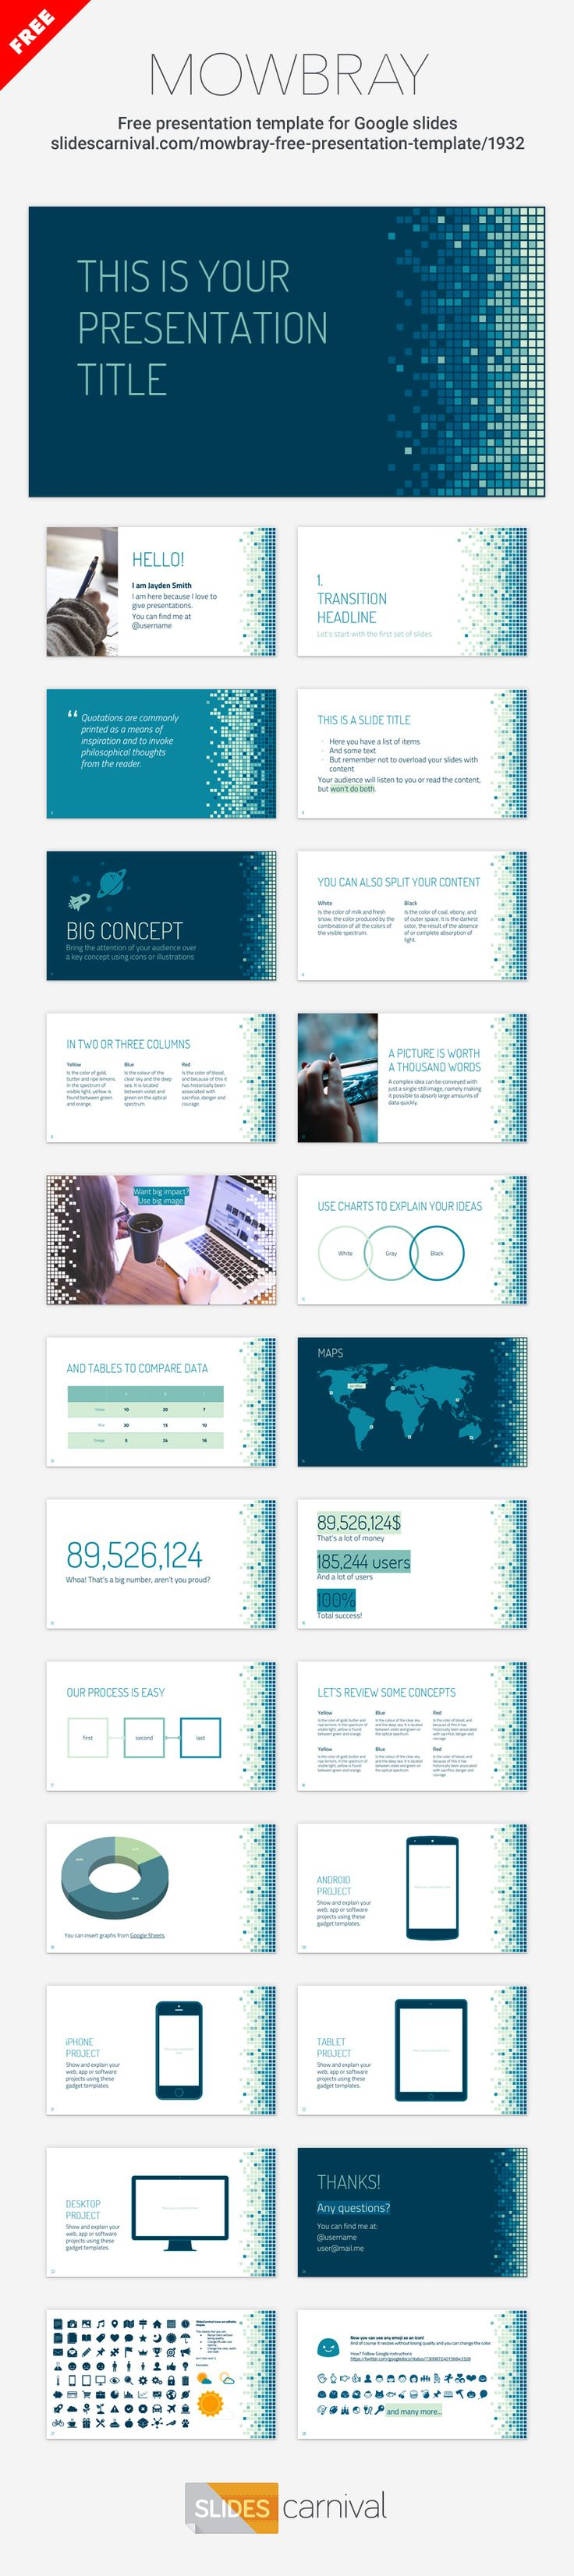 consulting presentation templates